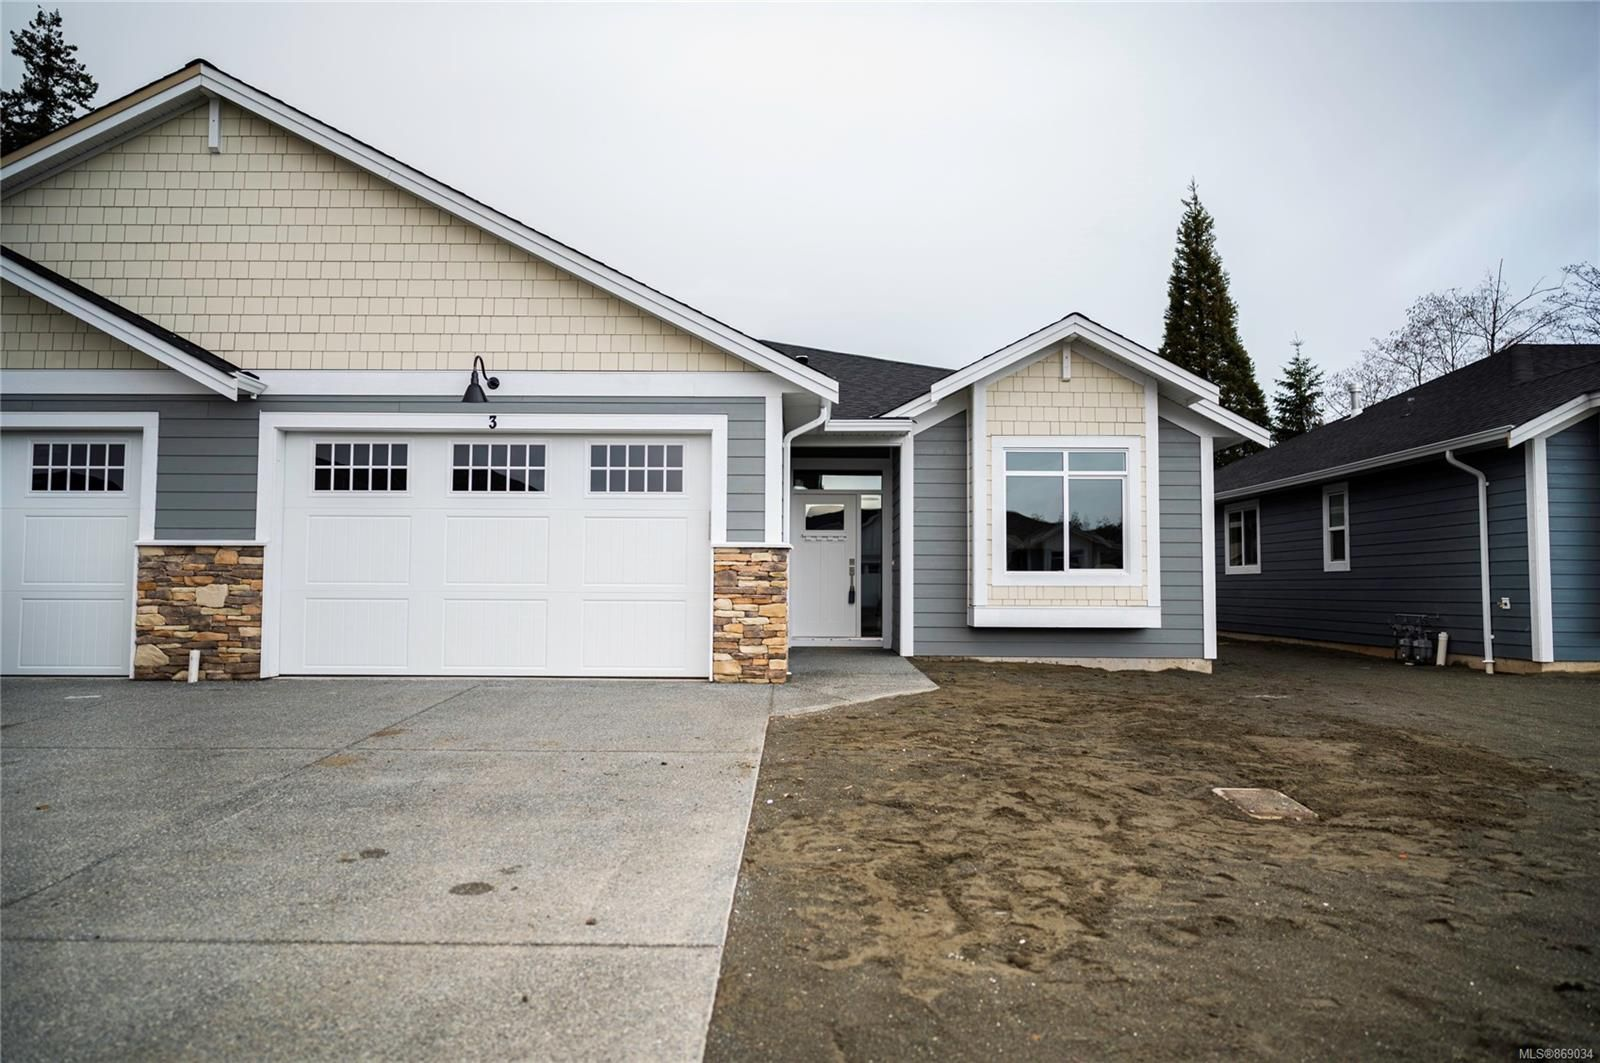 Main Photo: 22 200 Nikola Rd in : CR Campbell River West Row/Townhouse for sale (Campbell River)  : MLS®# 869034